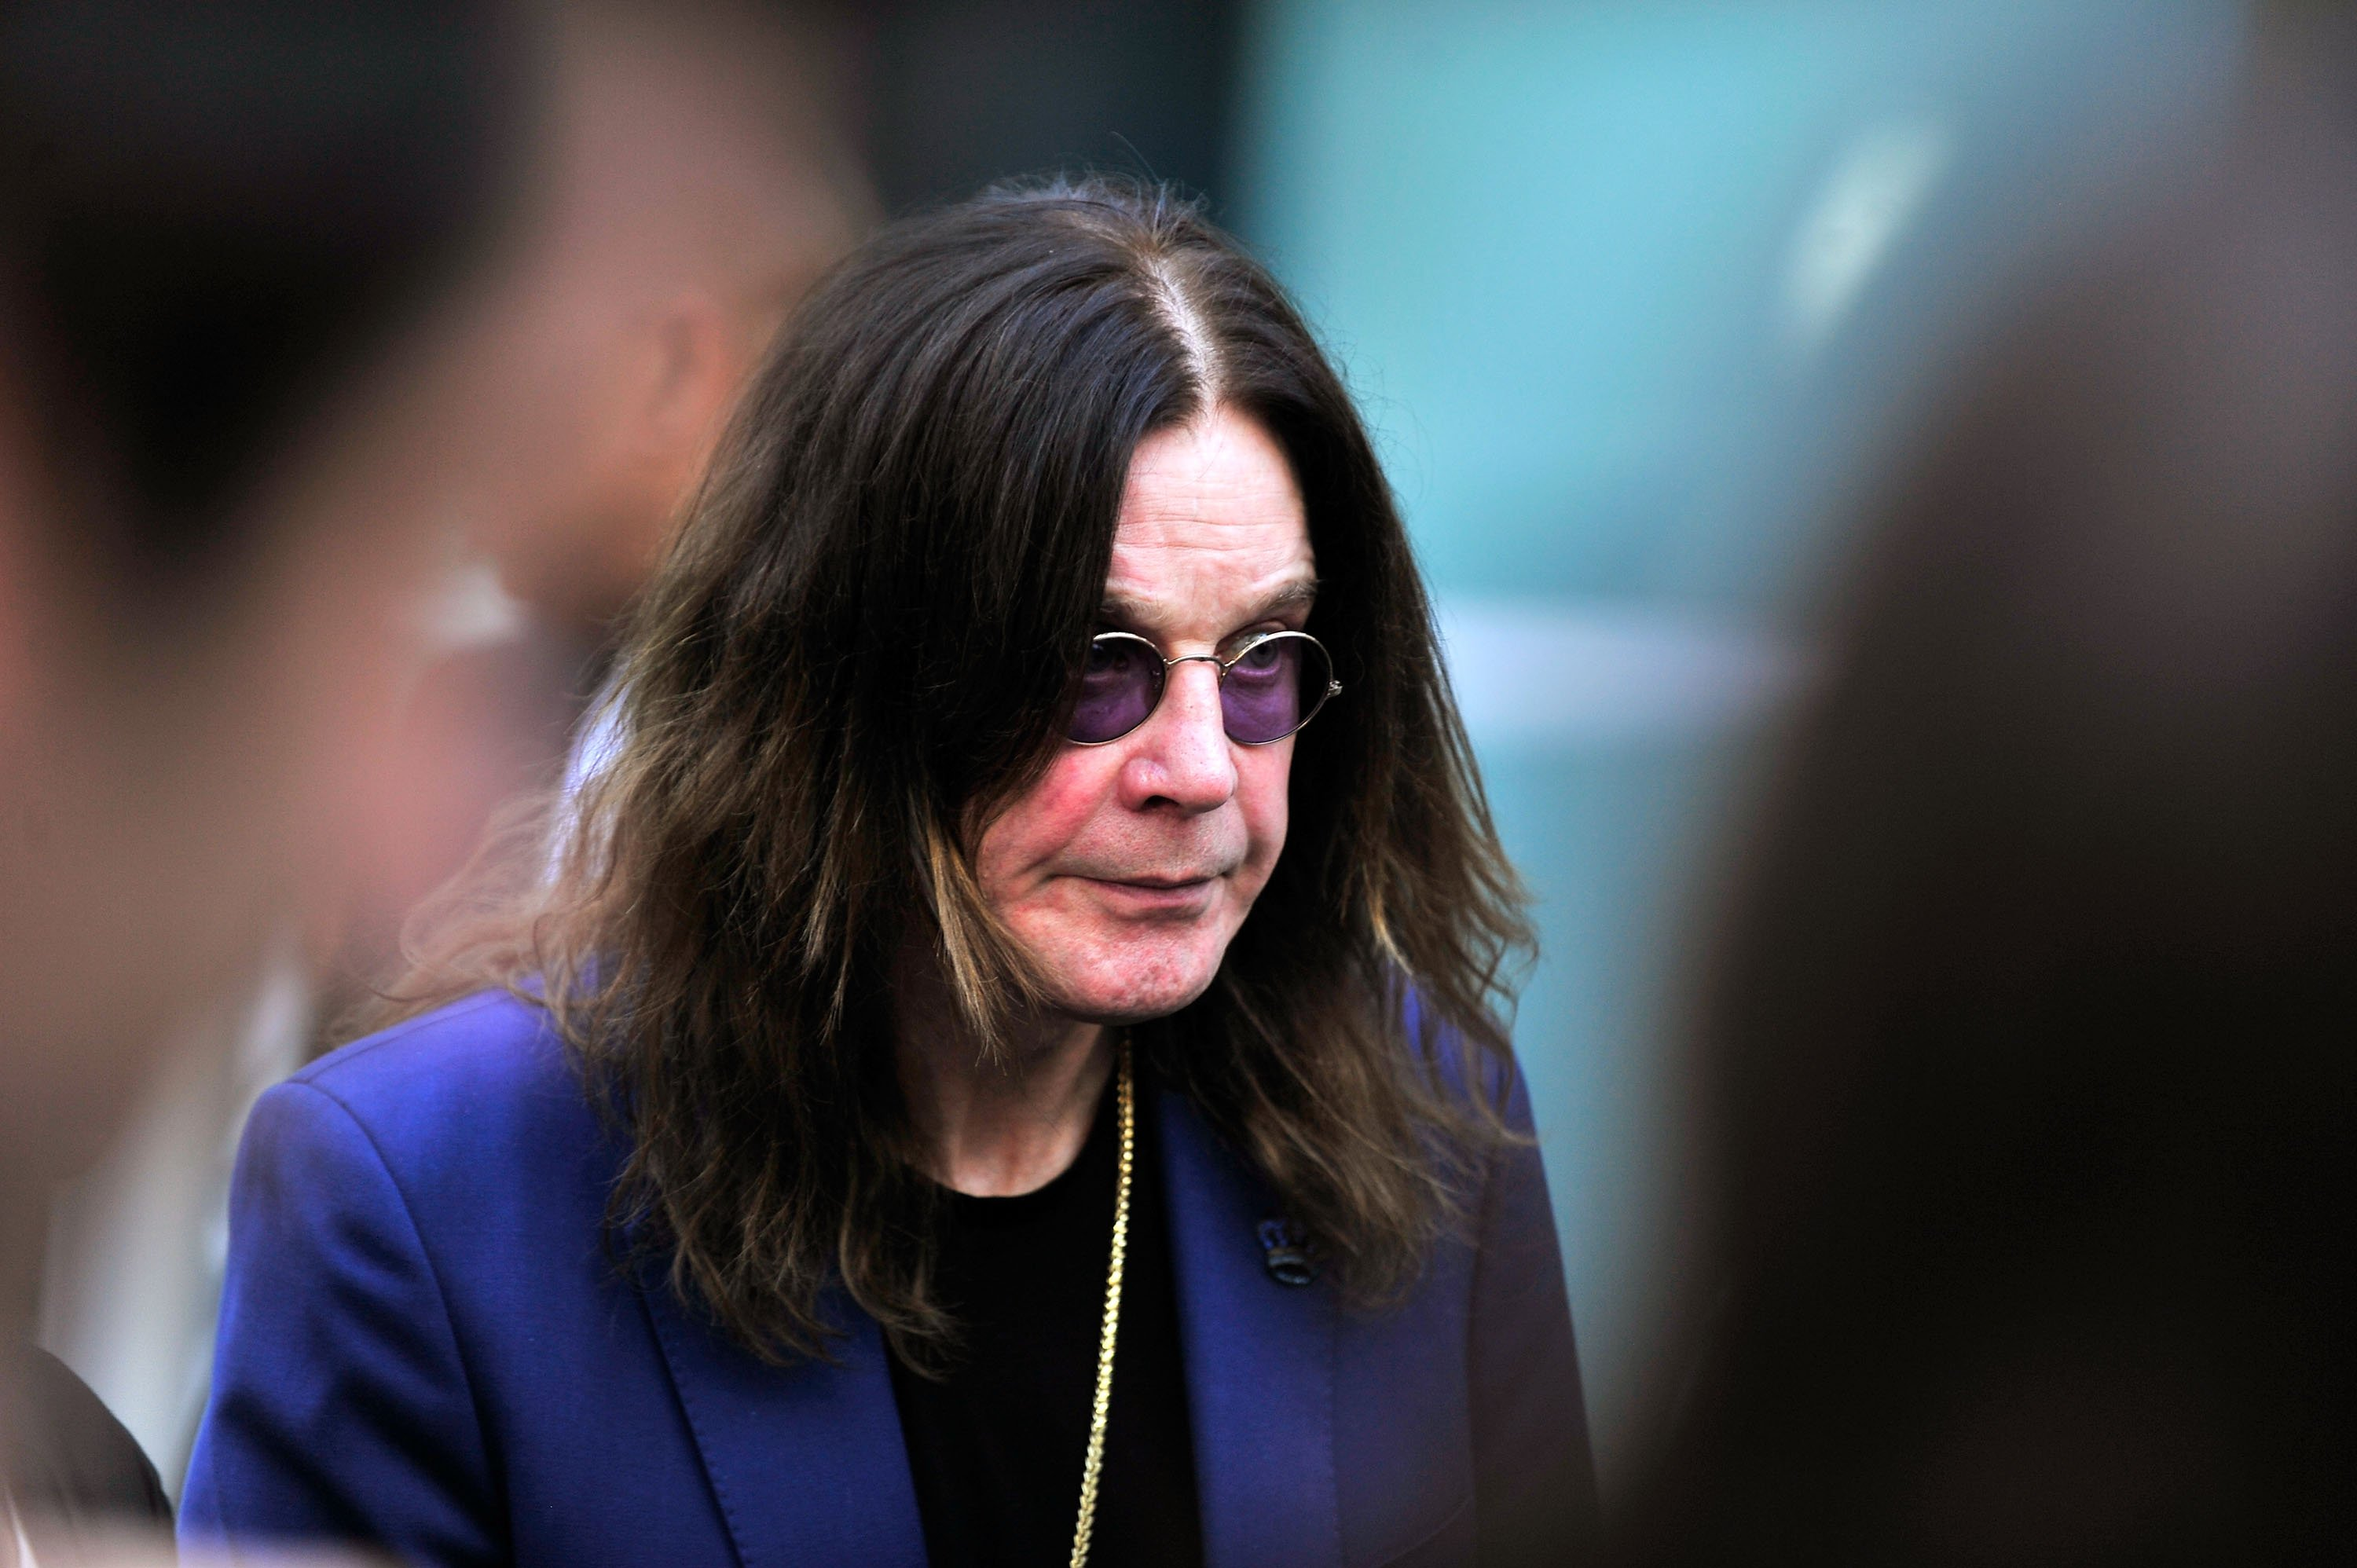 A closer look of Ozzy Osbourne, now 71. | Photo: Getty Images